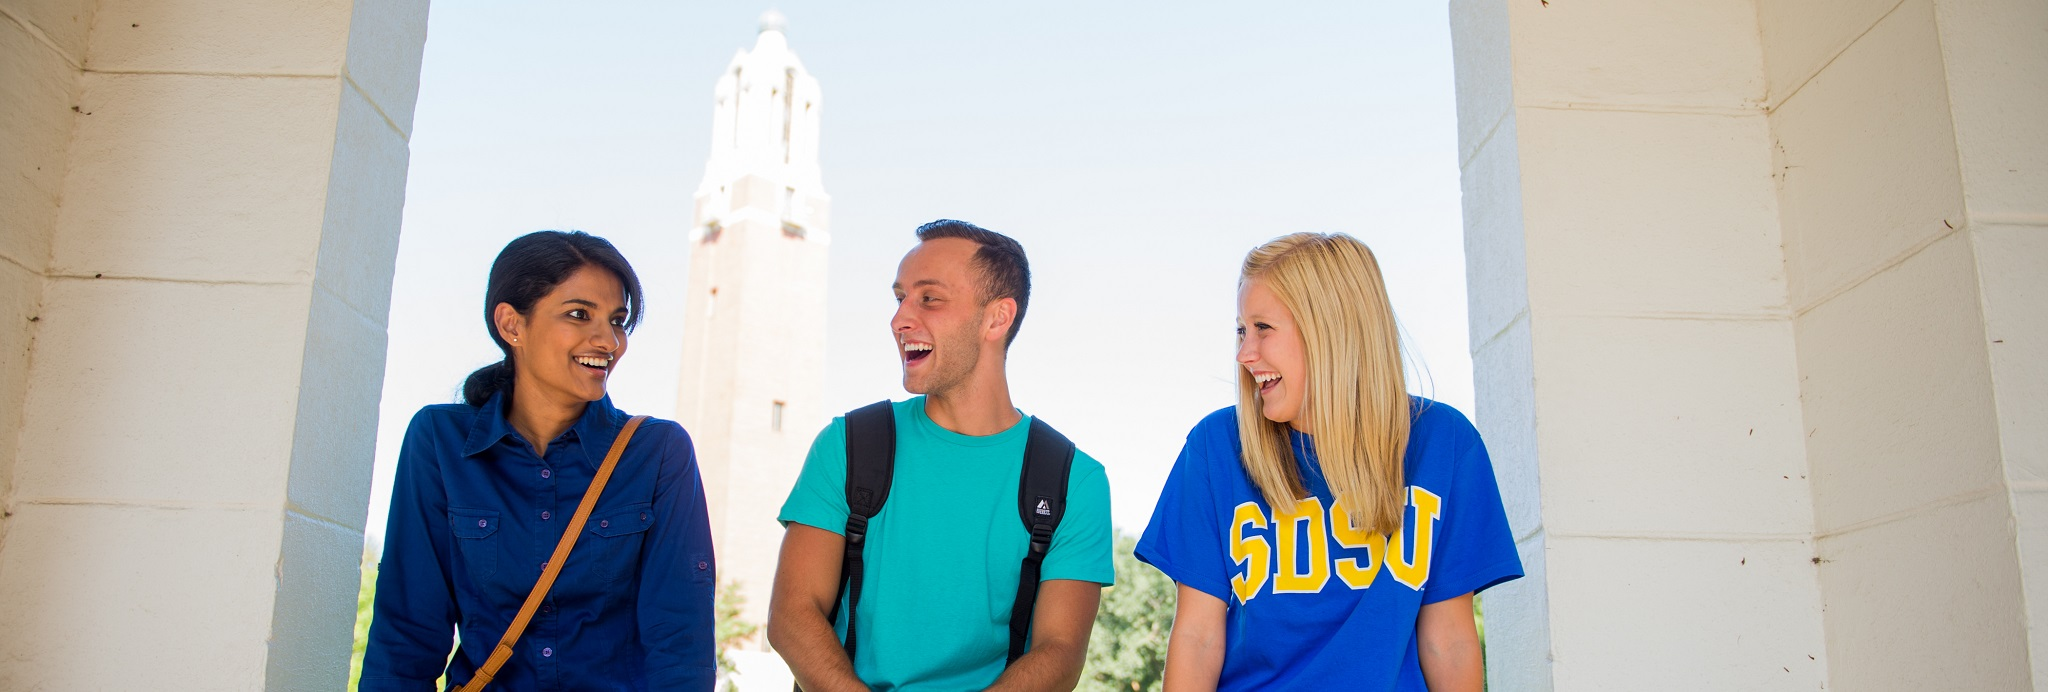 SDSU students on campus.